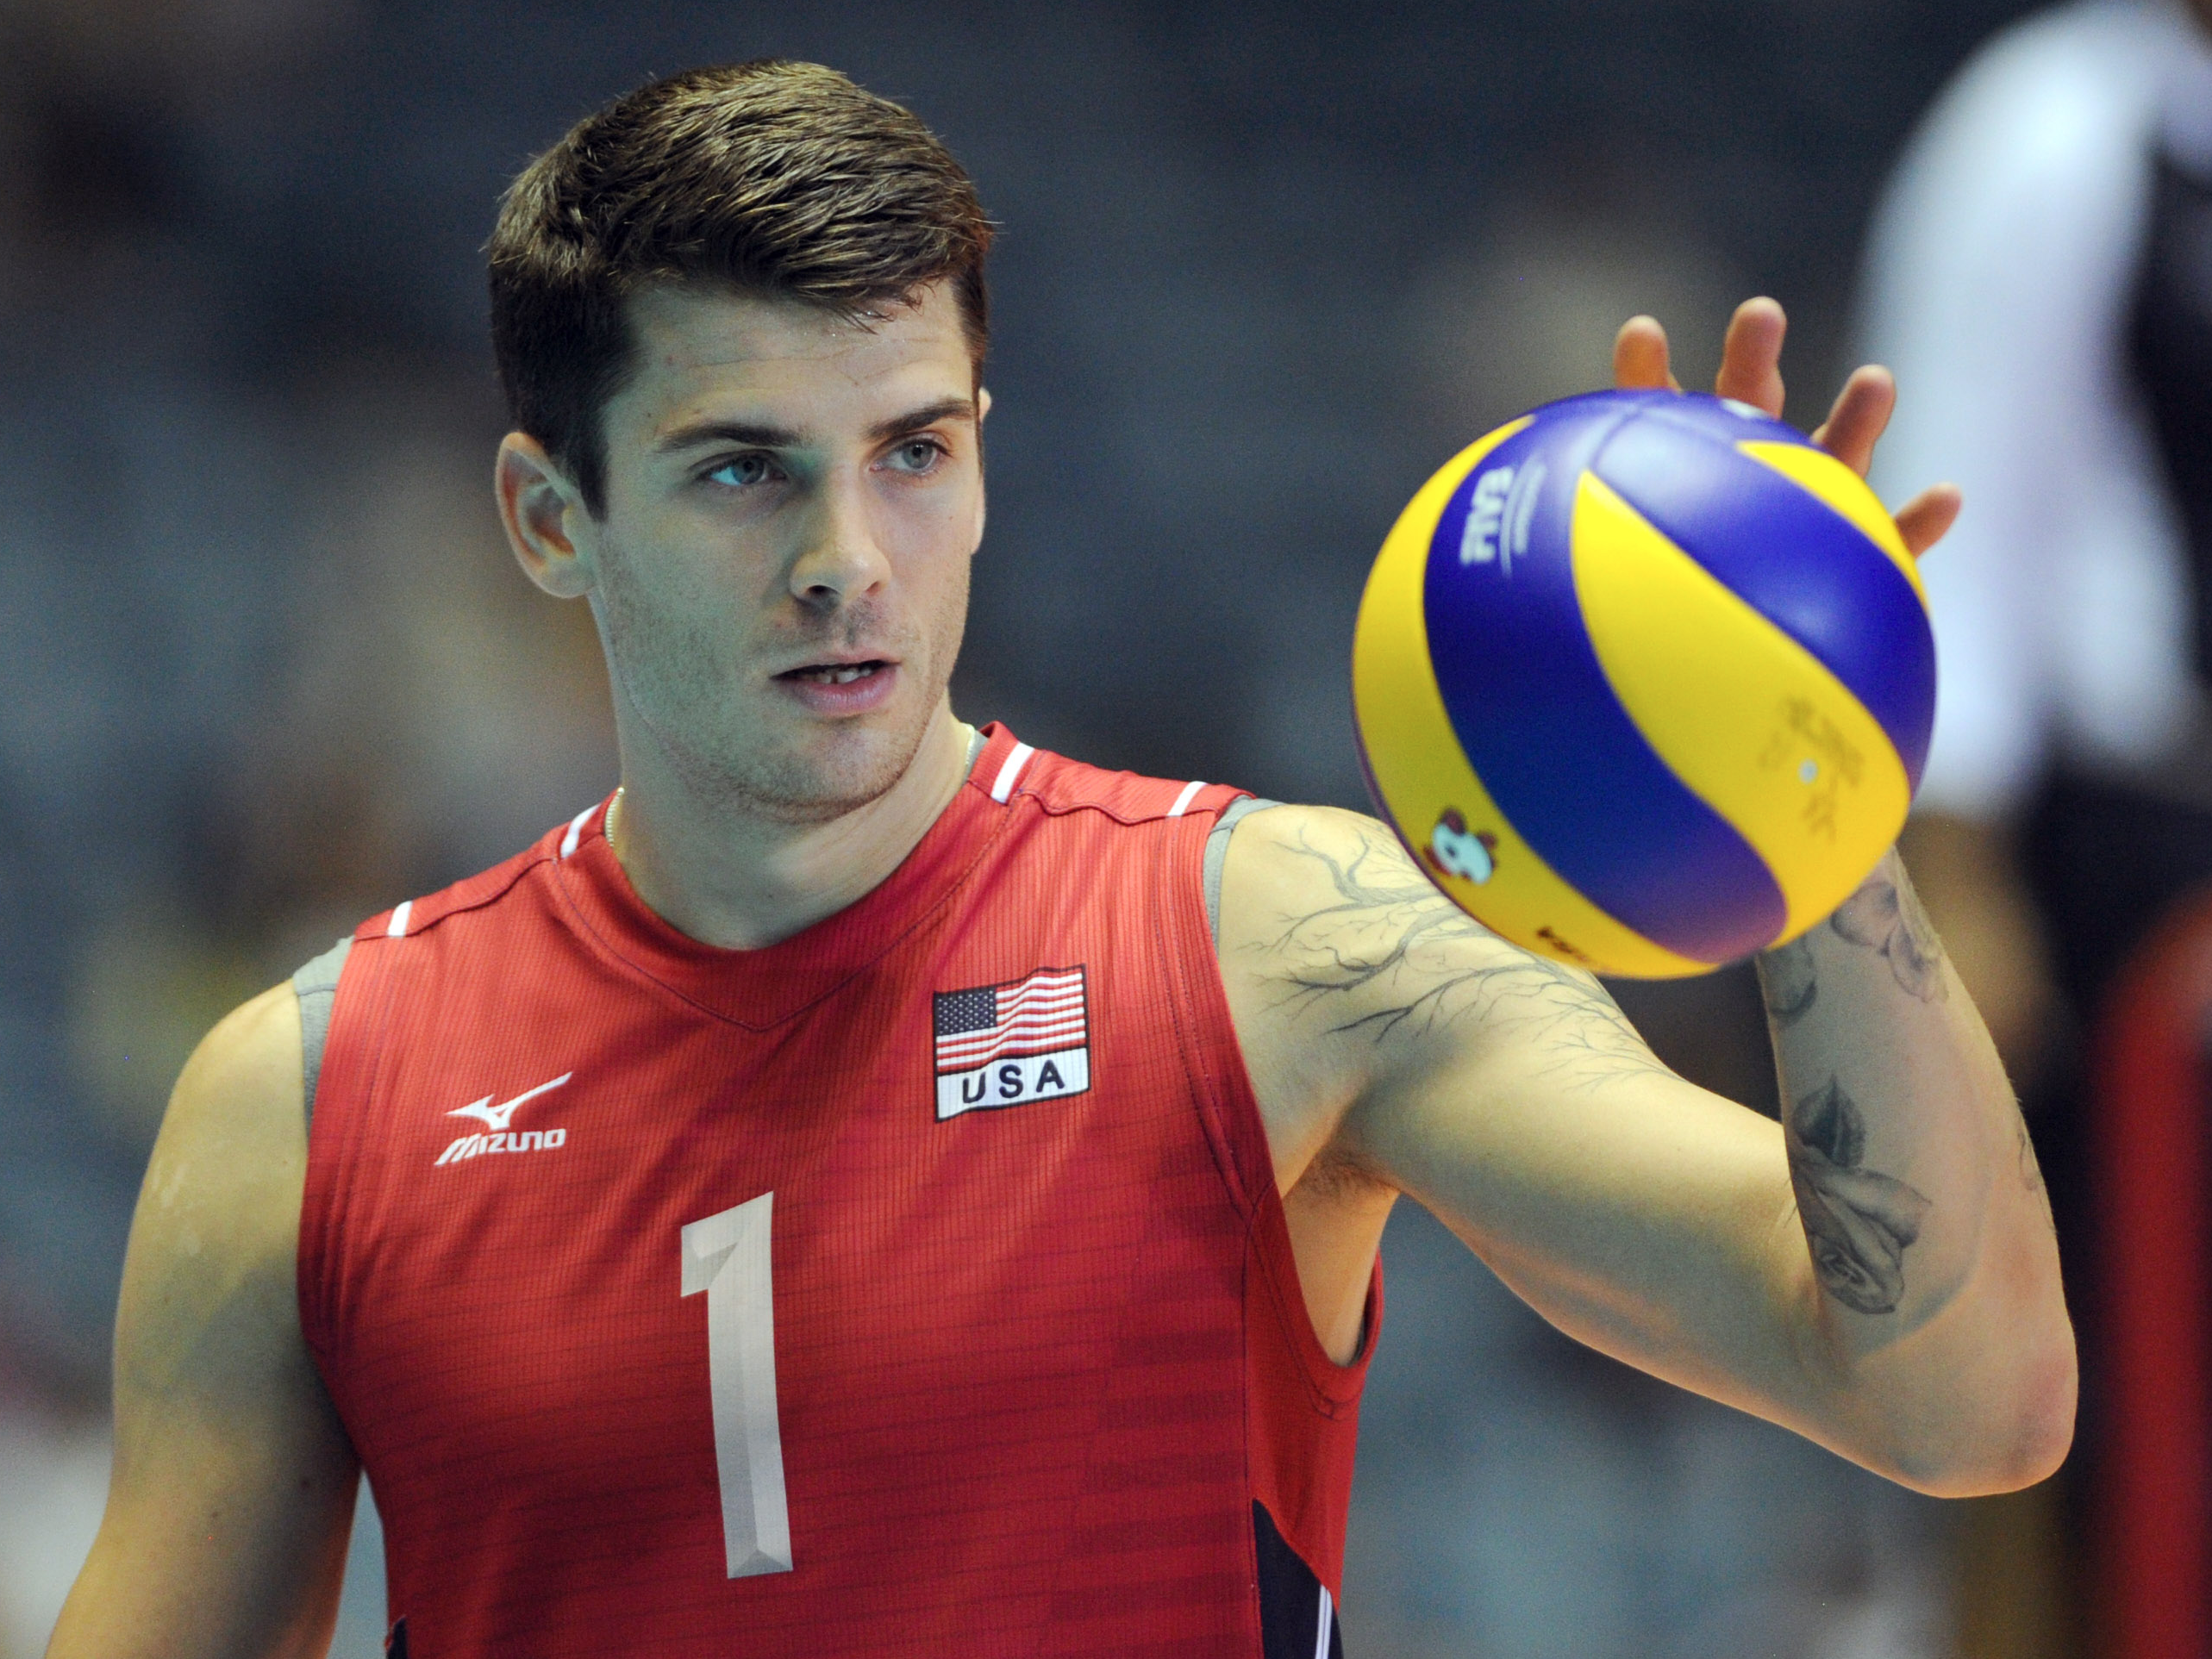 These Are The Most Popular Athlete Names In Every Sport Jpg 2566 1925 Matt Anderson Volleyball Anderson Volleyball Mens Volleyball